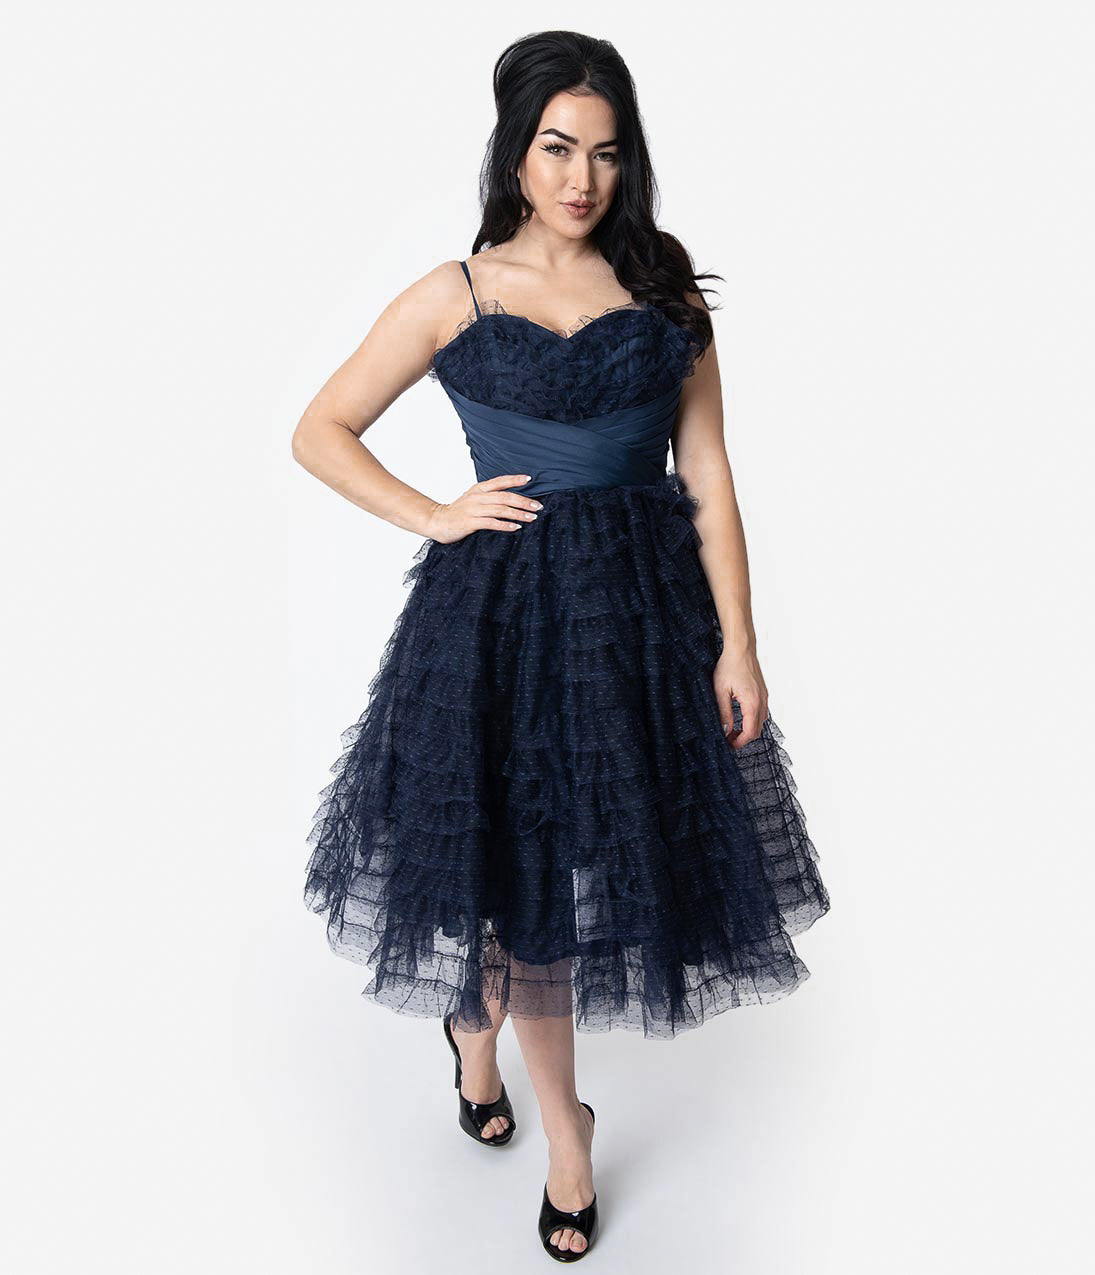 1950s Party Dresses & Prom Dresses for Sale Unique Vintage 1950S Navy Ruffled Tulle Sweetheart Cupcake Swing Dress $128.00 AT vintagedancer.com